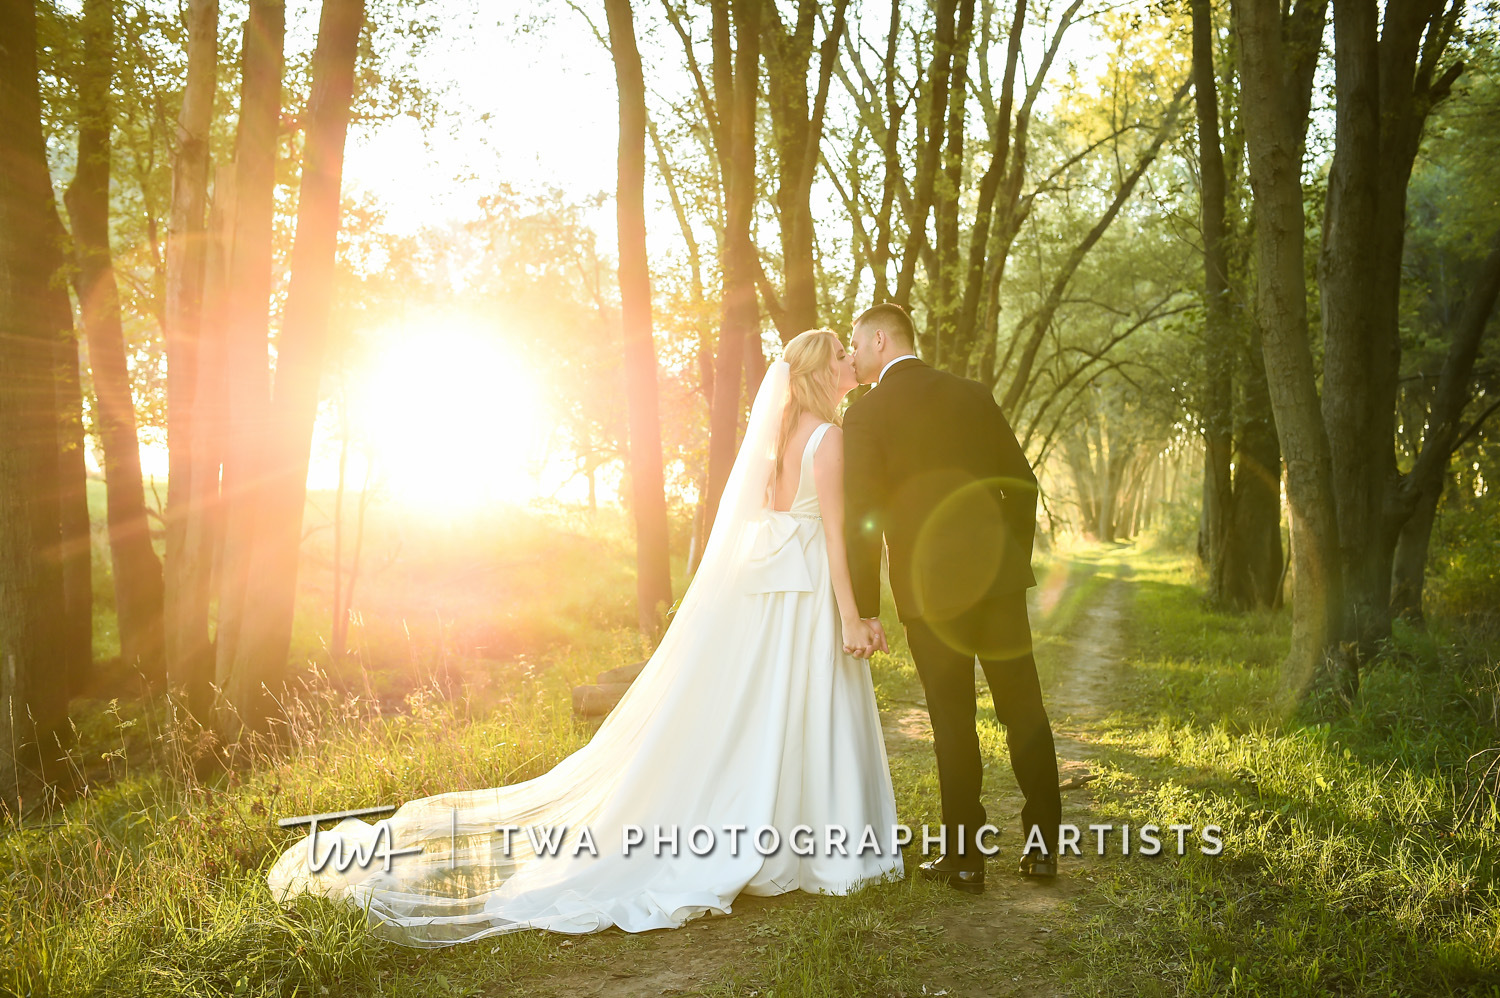 Chicago-Wedding-Photographer-TWA-Photographic-Artists-Private-Residence_Howes_Koczmara_SR_TL-0754